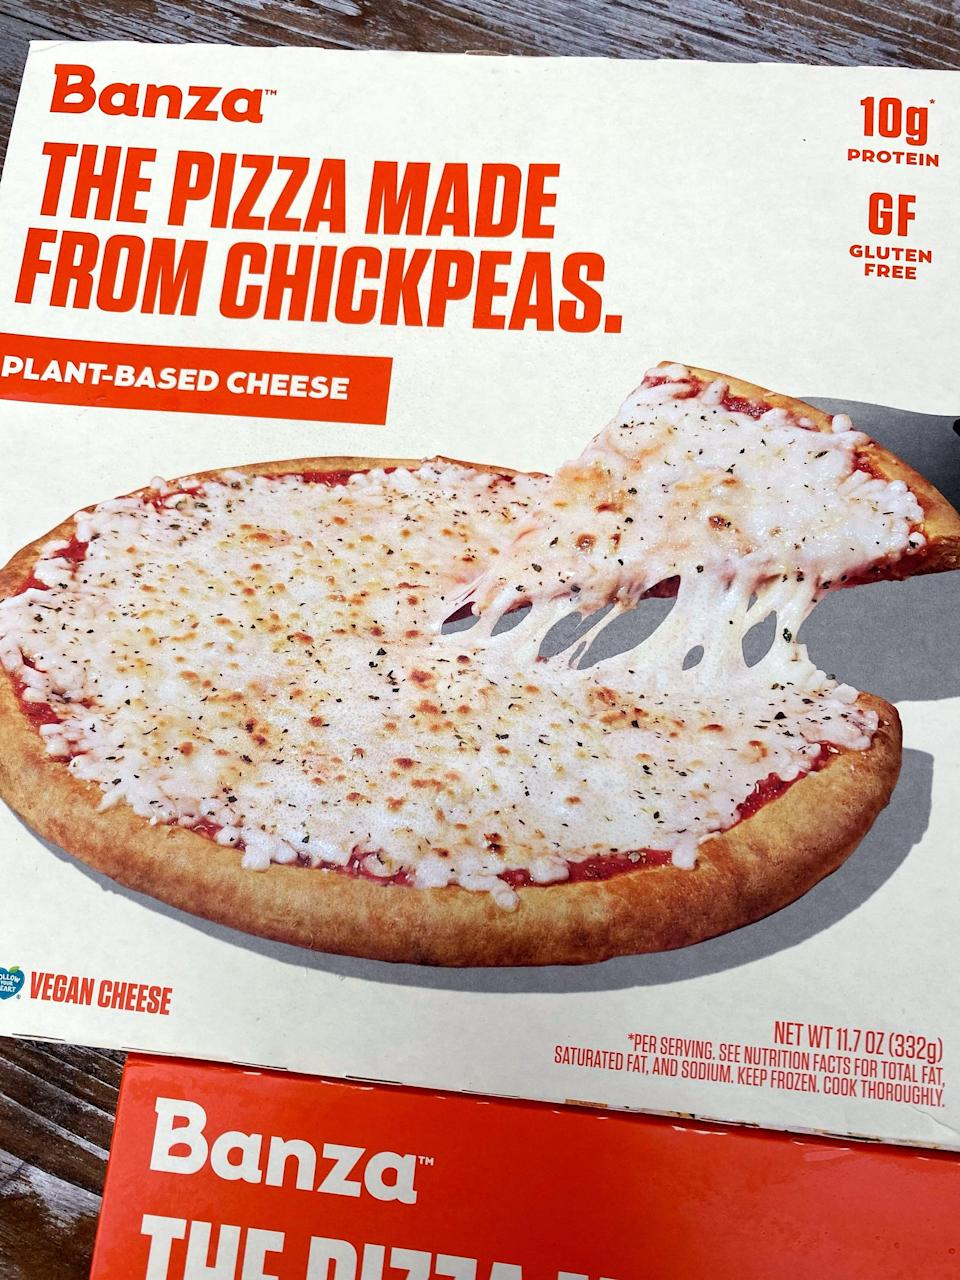 <p>Here's what the box of Banza Plant-Based Cheese frozen pizza looks like. It's made with vegan cheese and is a fairly small pizza, about nine inches in diameter.</p>